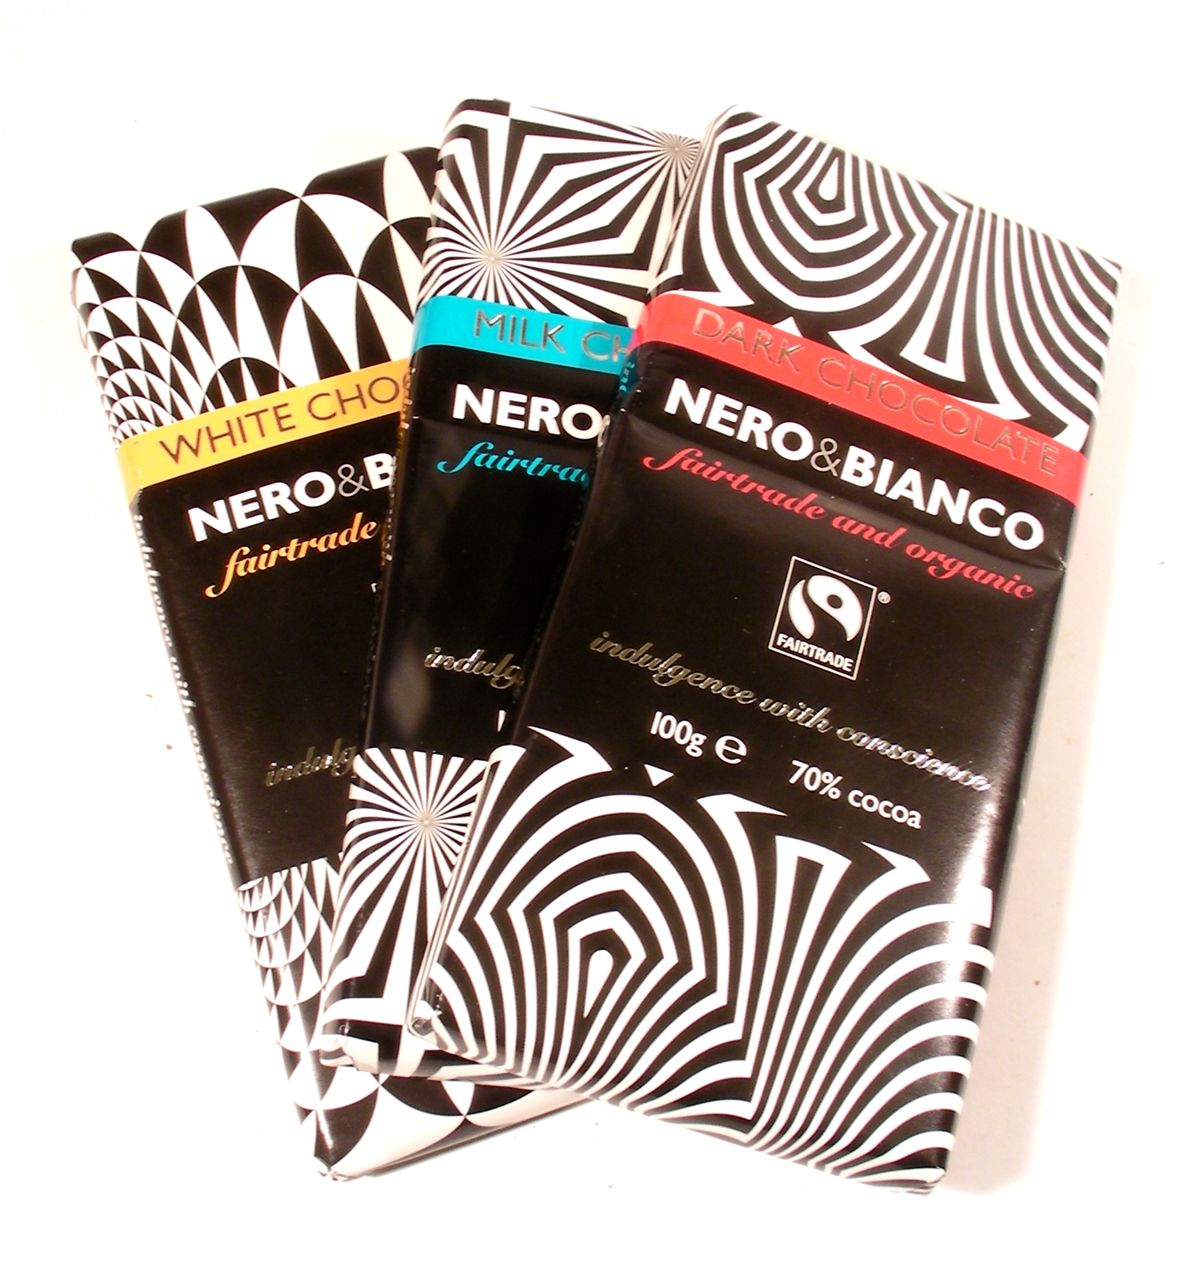 Nero & Bianco Fairtrade Chocolate Review